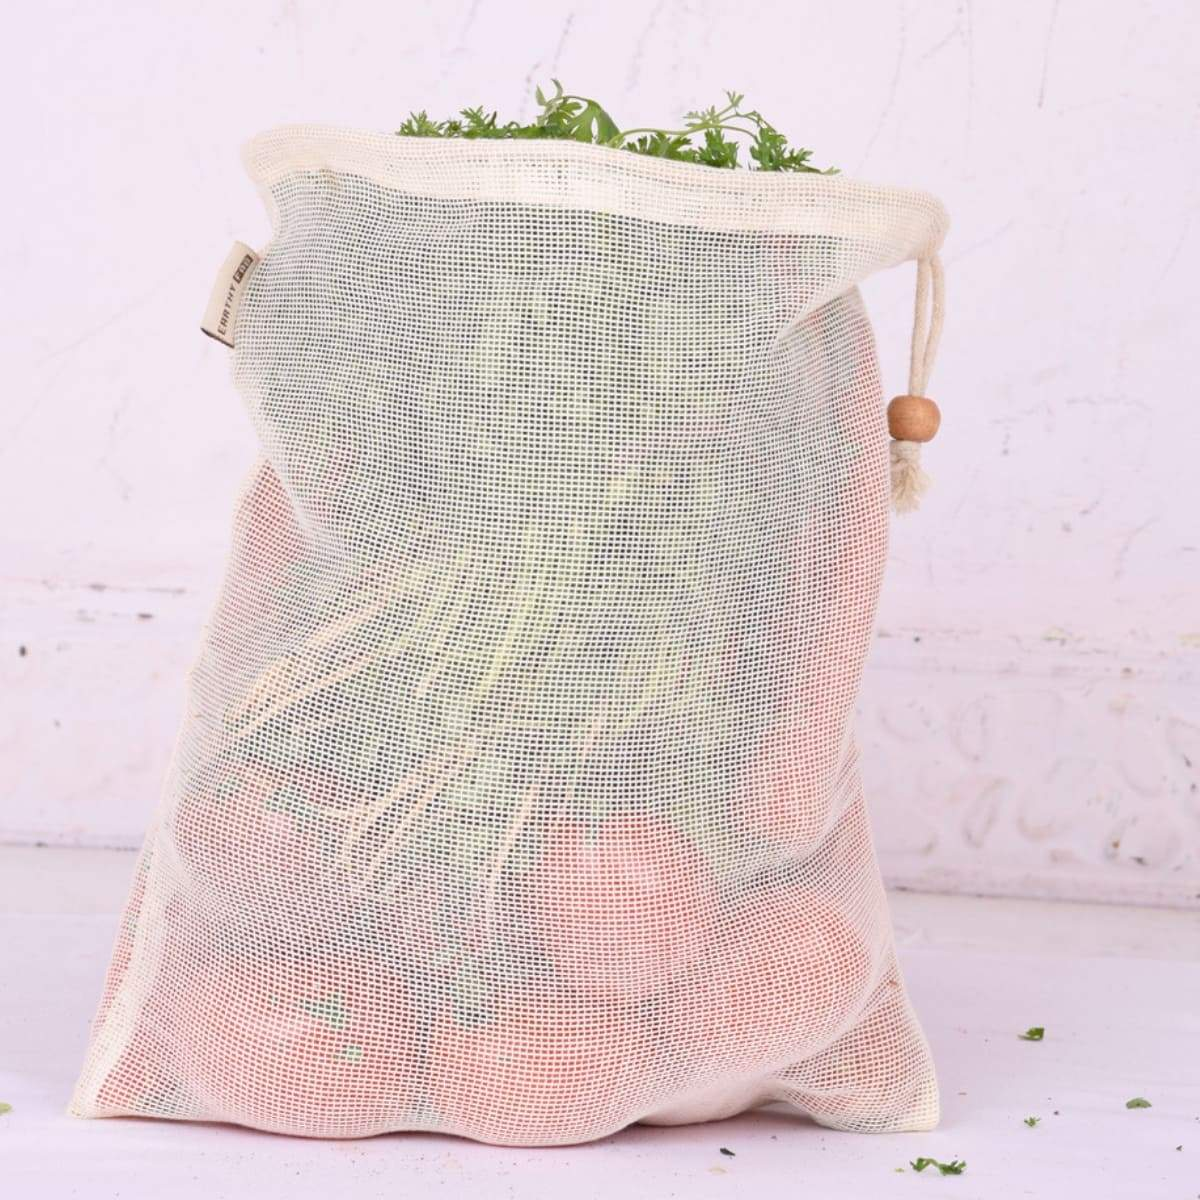 Cotton Net Produce Storage Bags (Eco-Friendly, Multipurpose & Reusable Net Bags)